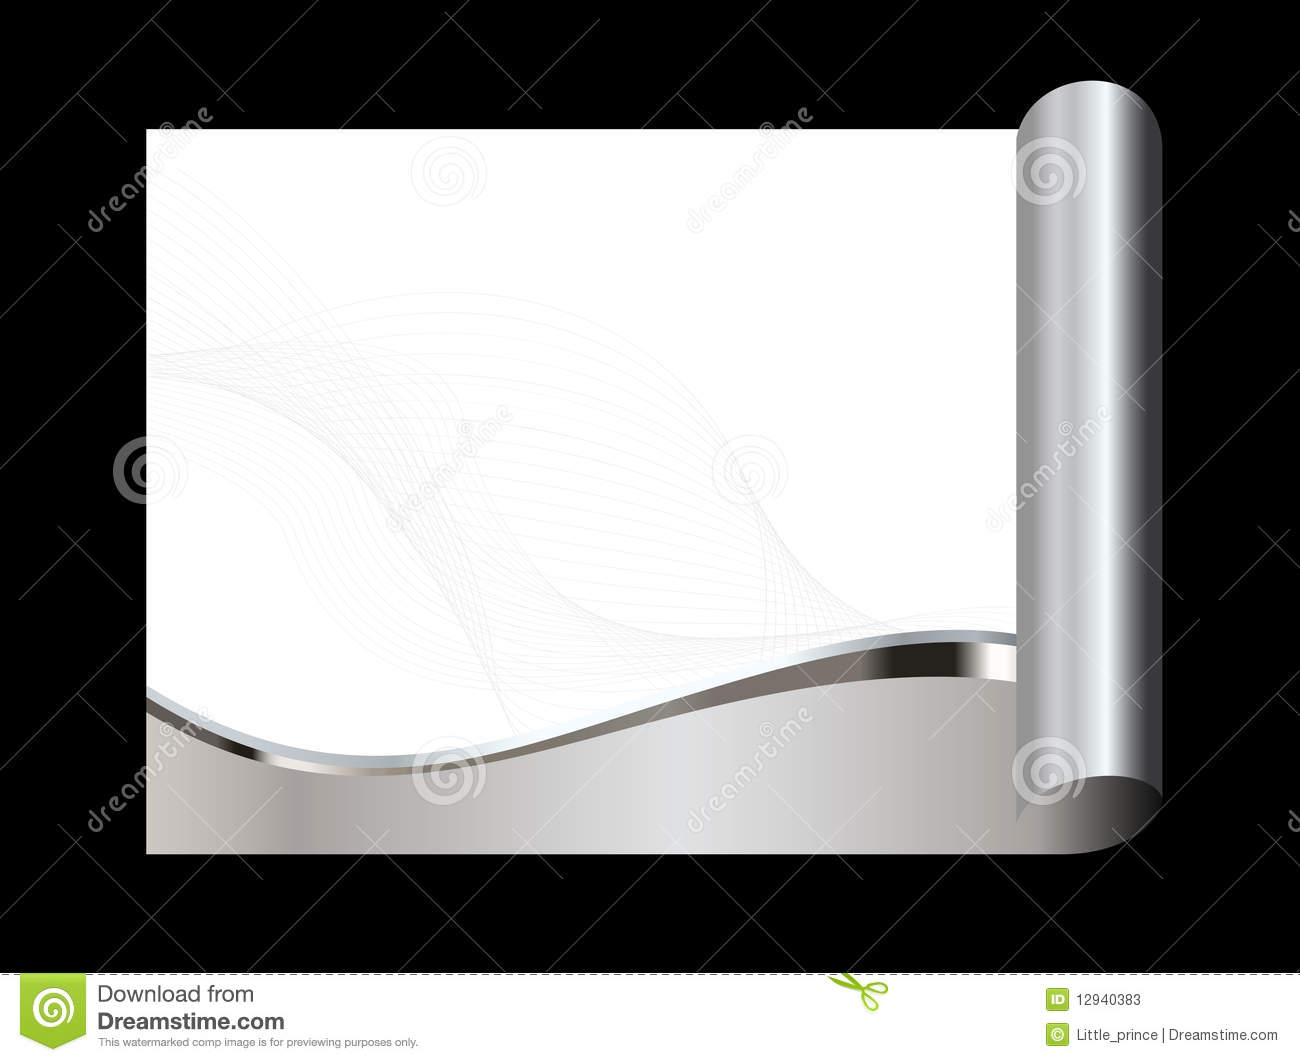 Silver, gray and white abstract background